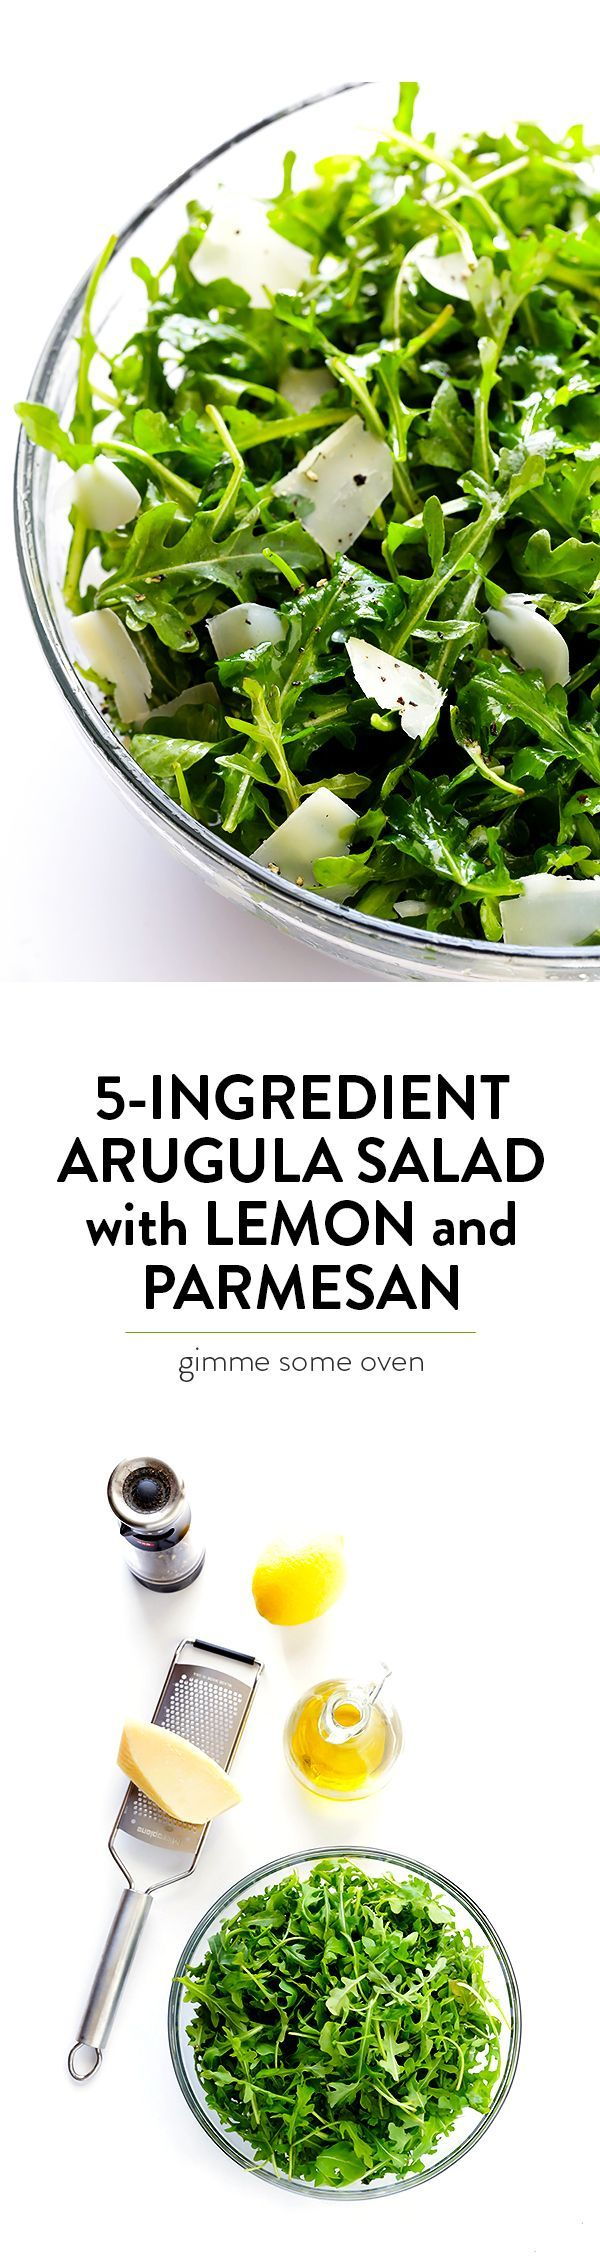 This 5-Ingredient Arugula Salad with Parmesan, Lemon and Olive Oil is super easy to make, and always tastes so fresh and delicious! | http://gimmesomeoven.com